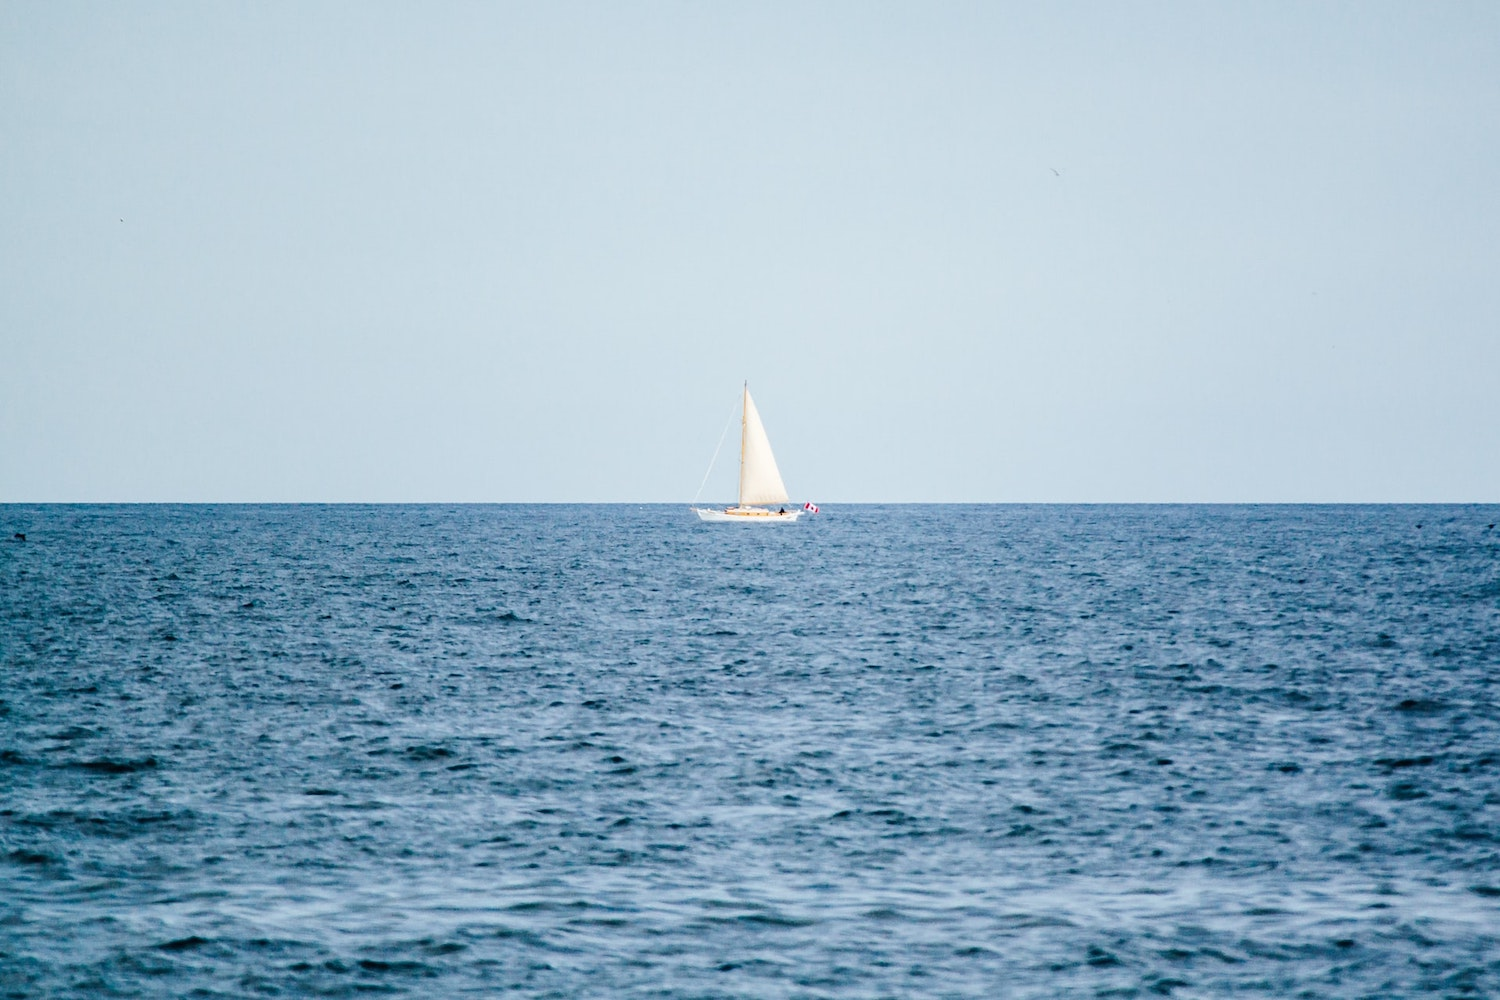 Self-love: don't get lost at sea